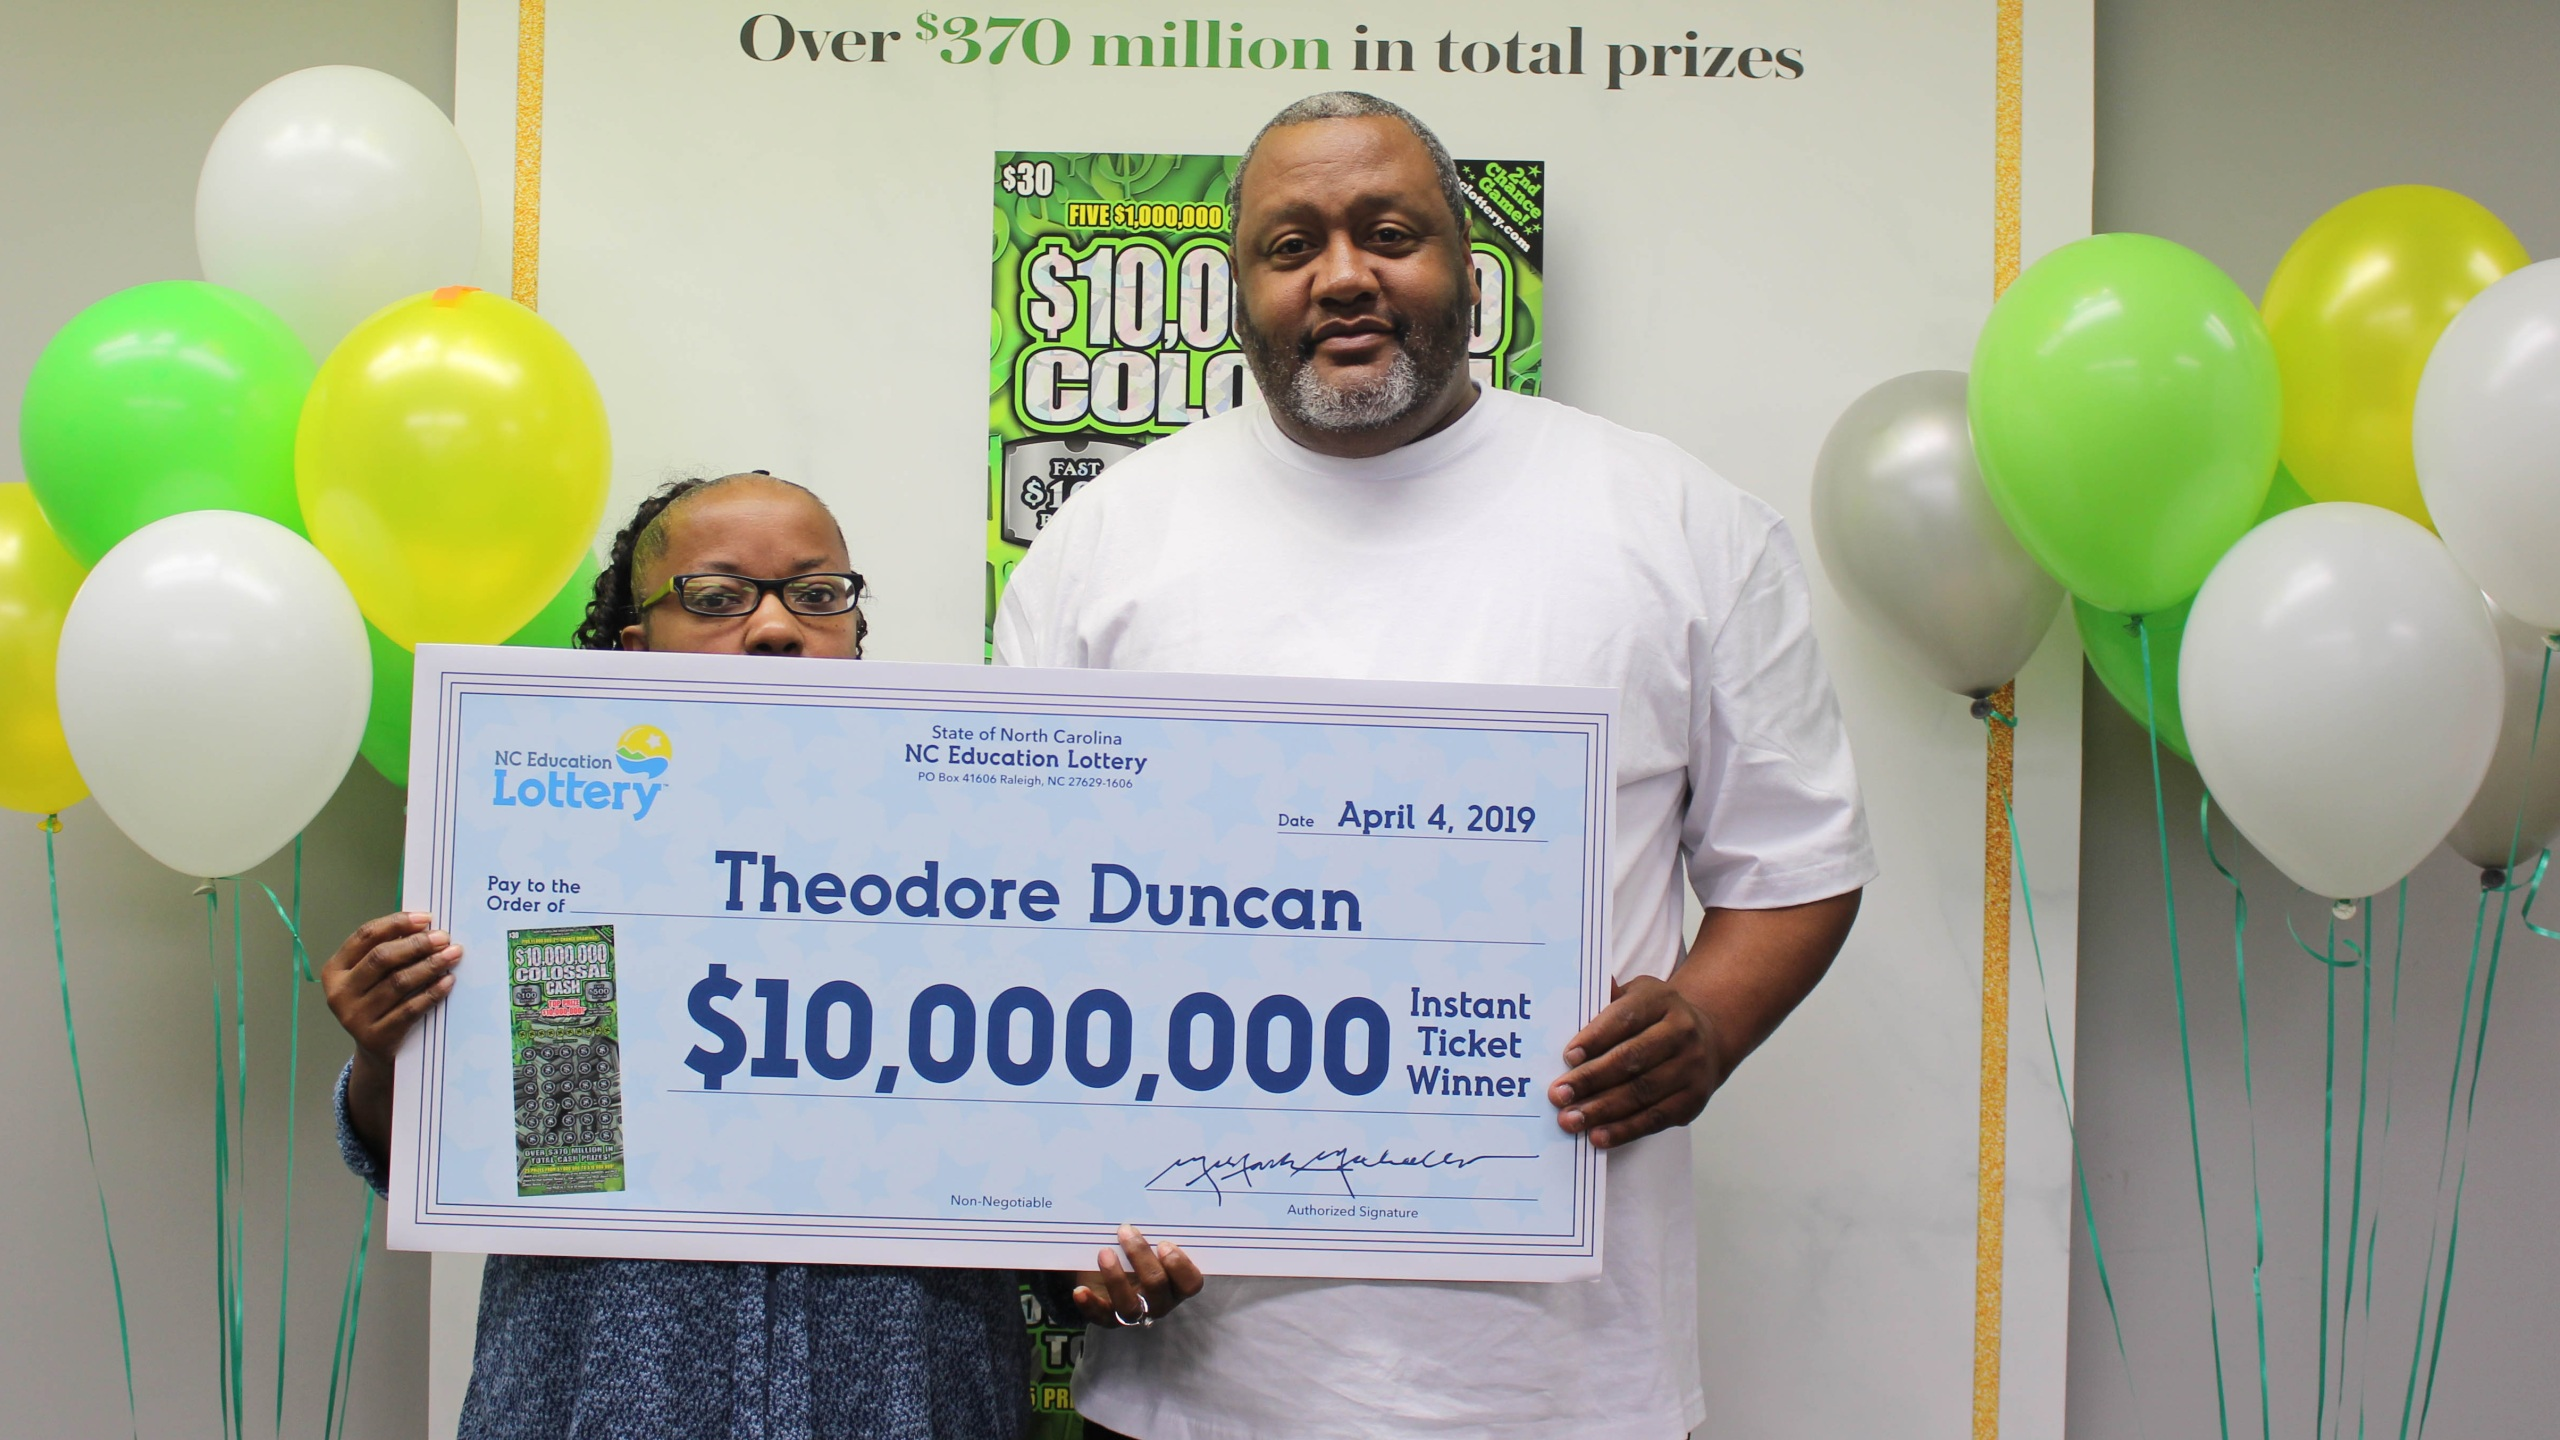 Theodore Duncan_$10 million_Colossal Cash ticket 4.4.2019_1554398094771.jpg.jpg